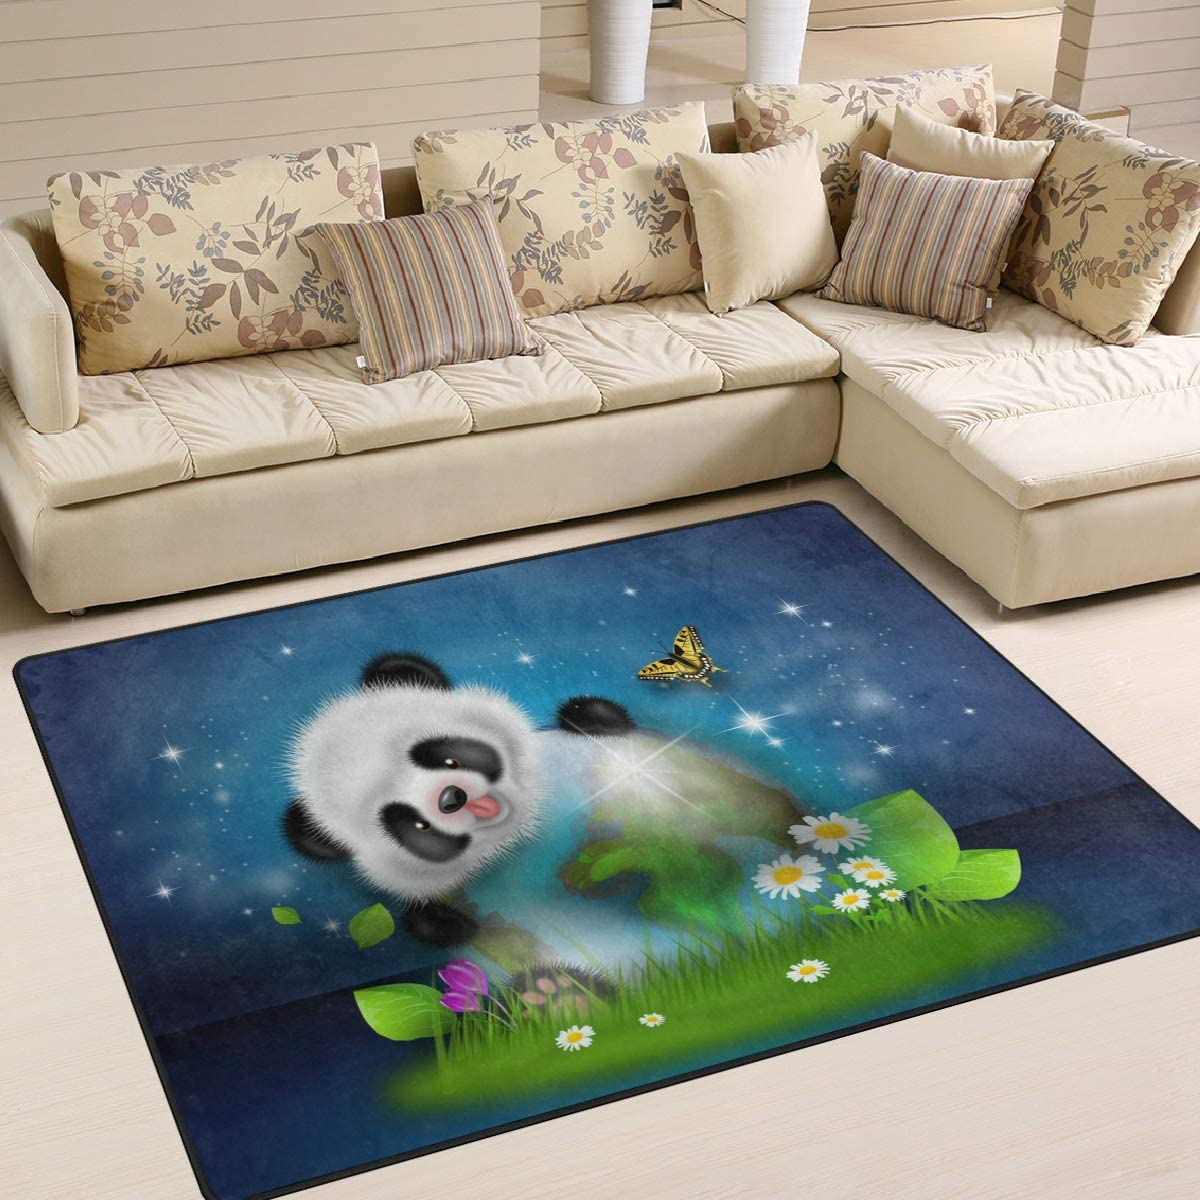 1.7 x 2.6 ft Animal Panda Bear Nursery Rug Floor Carpet Yoga Mat 50 x 80 cm Naanle Cute Panda Non Slip Area Rug for Living Dinning Room Bedroom Kitchen